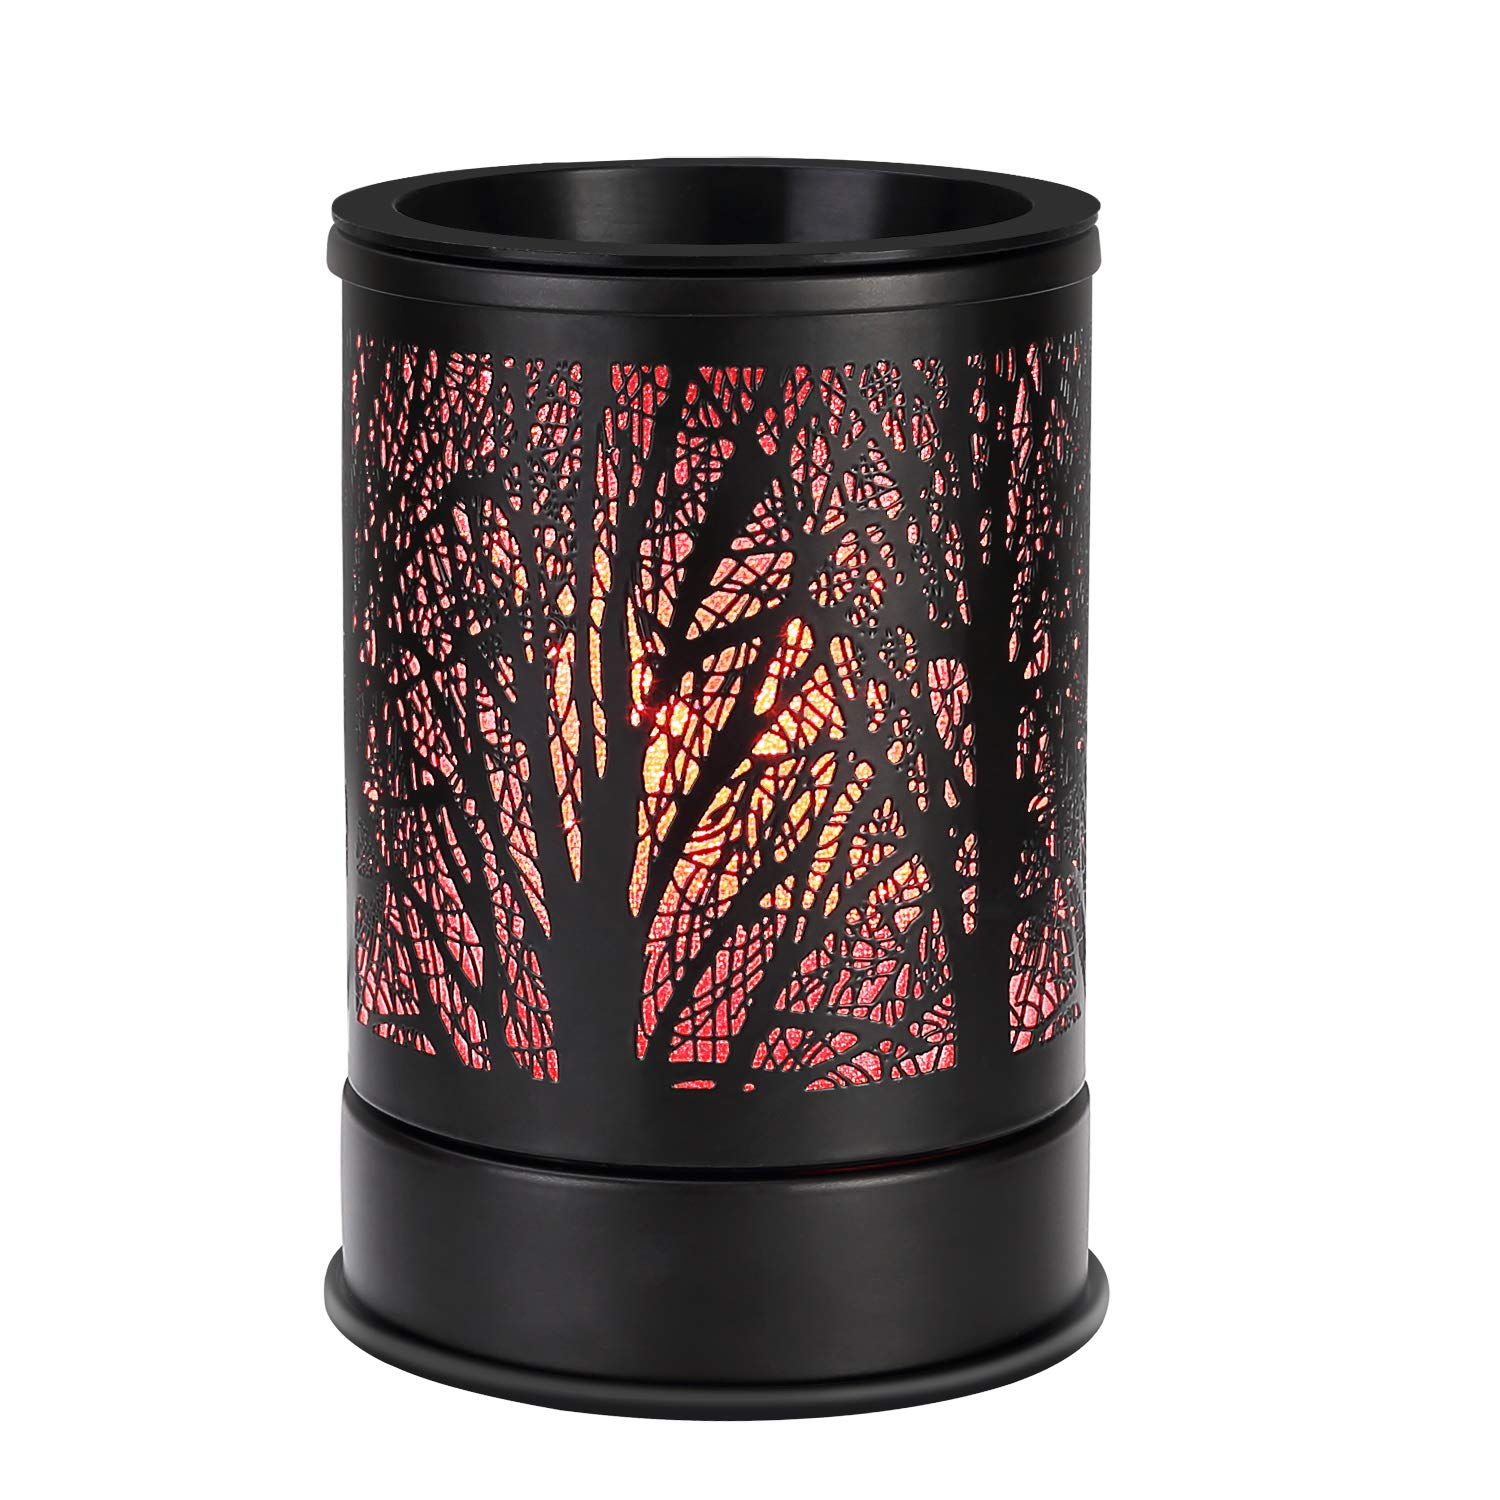 Enaroma Fragrance Wax Melts Warmer with 7 Colors LED Changing Light Classic Black Forest Design Scent Oil Candle Warmer by Enaroma